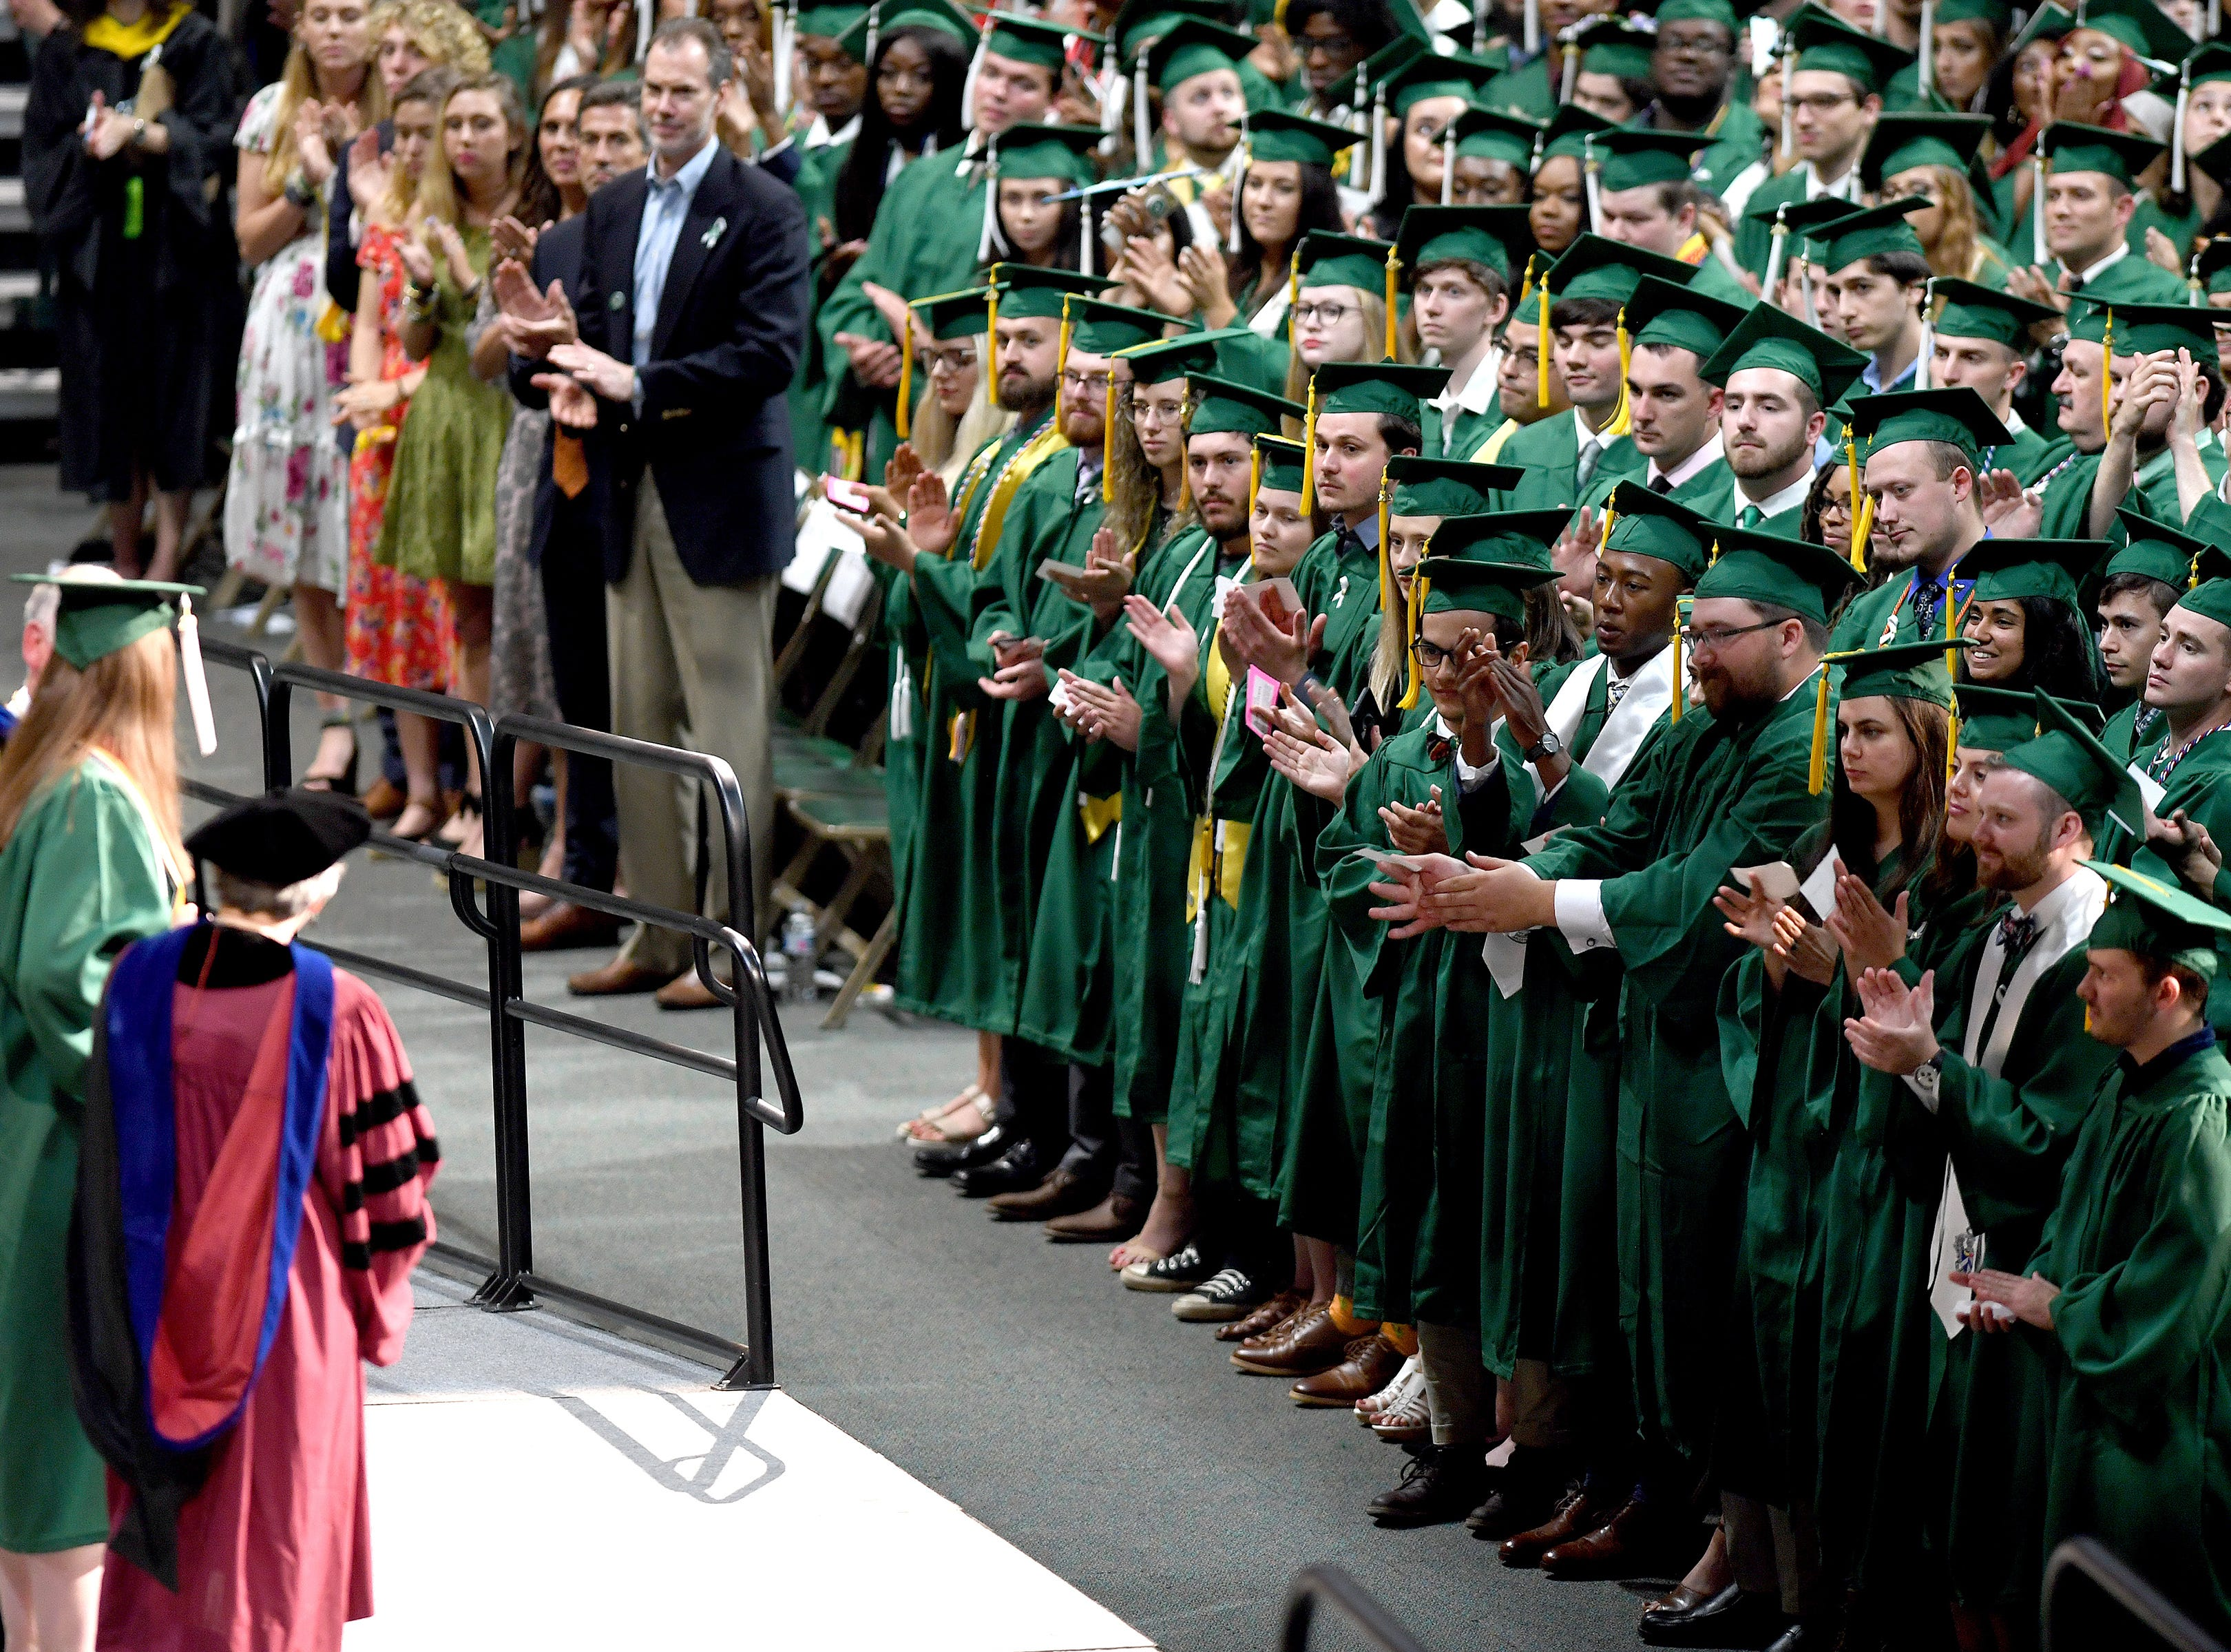 UNC Charlotte graduates applaud Emily Houpt as she is honored and receives her B.A in International Studies during the University's Commencement ceremony for the College of Liberal Arts and Sciences in Charlotte on May 11, 2019. Houpt was injured in the April 30 shooting at the university.